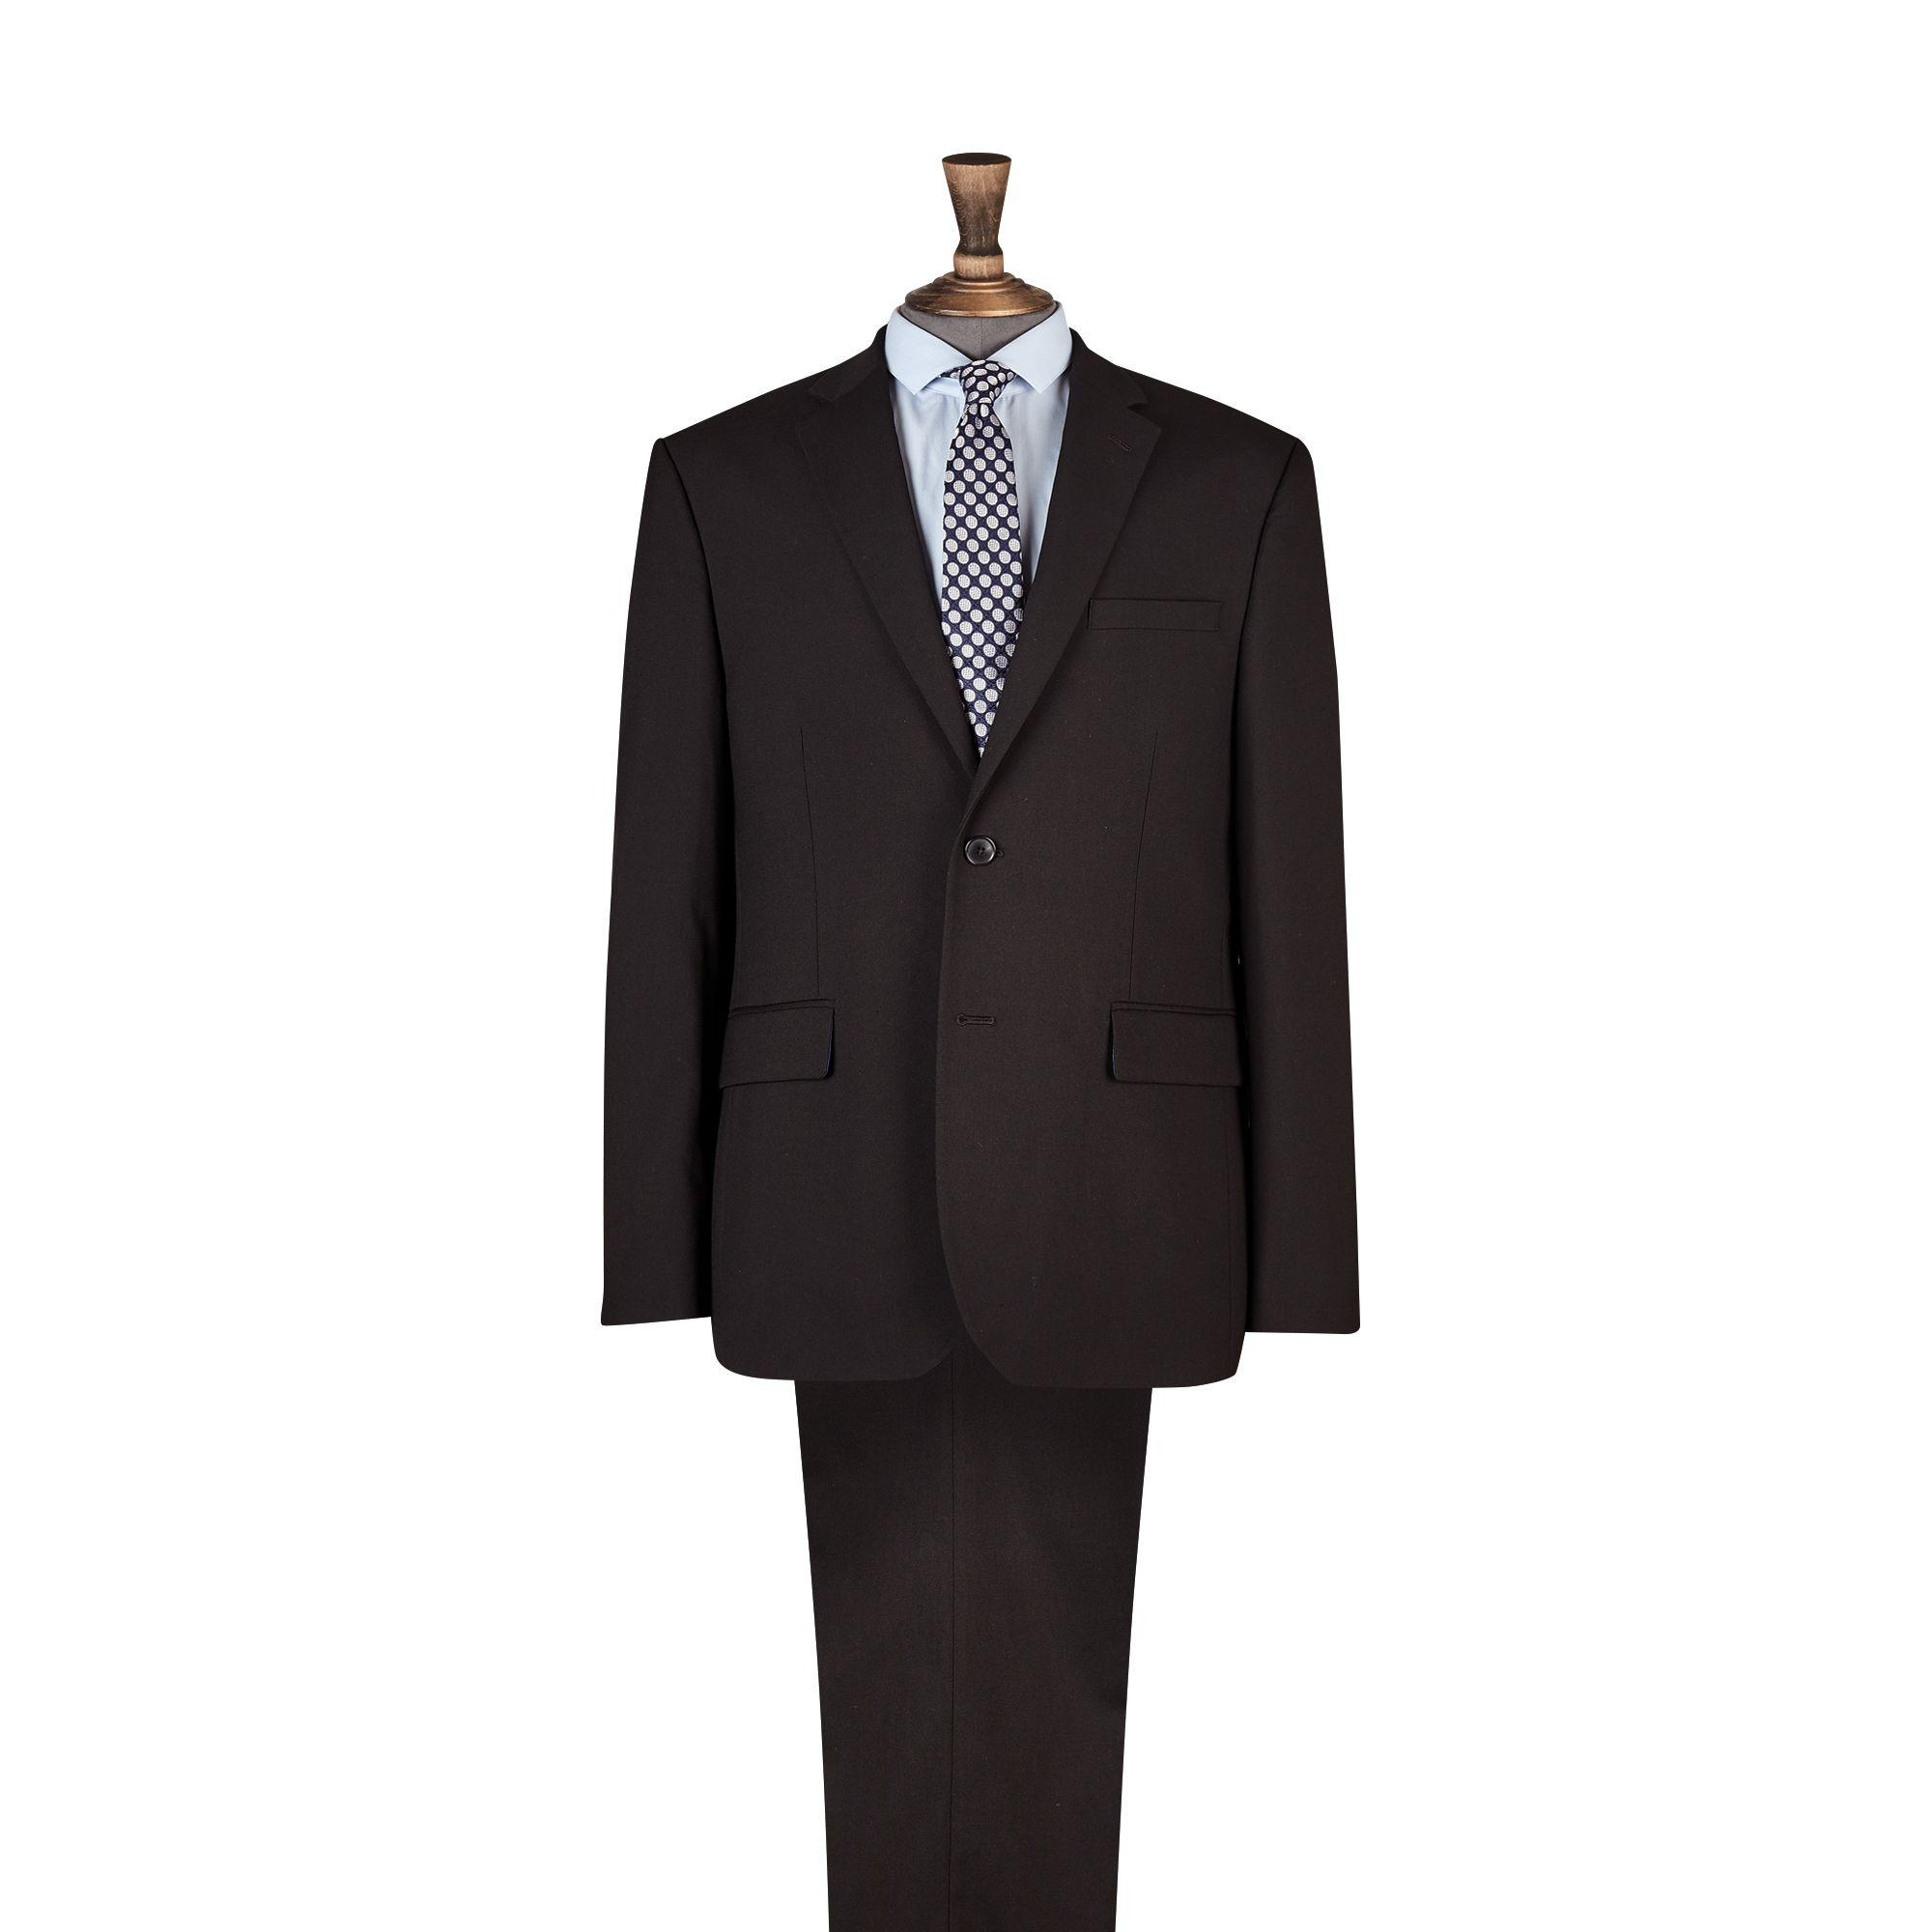 Burton Black Tailored Fit With Stretch Suit Jacket for Men